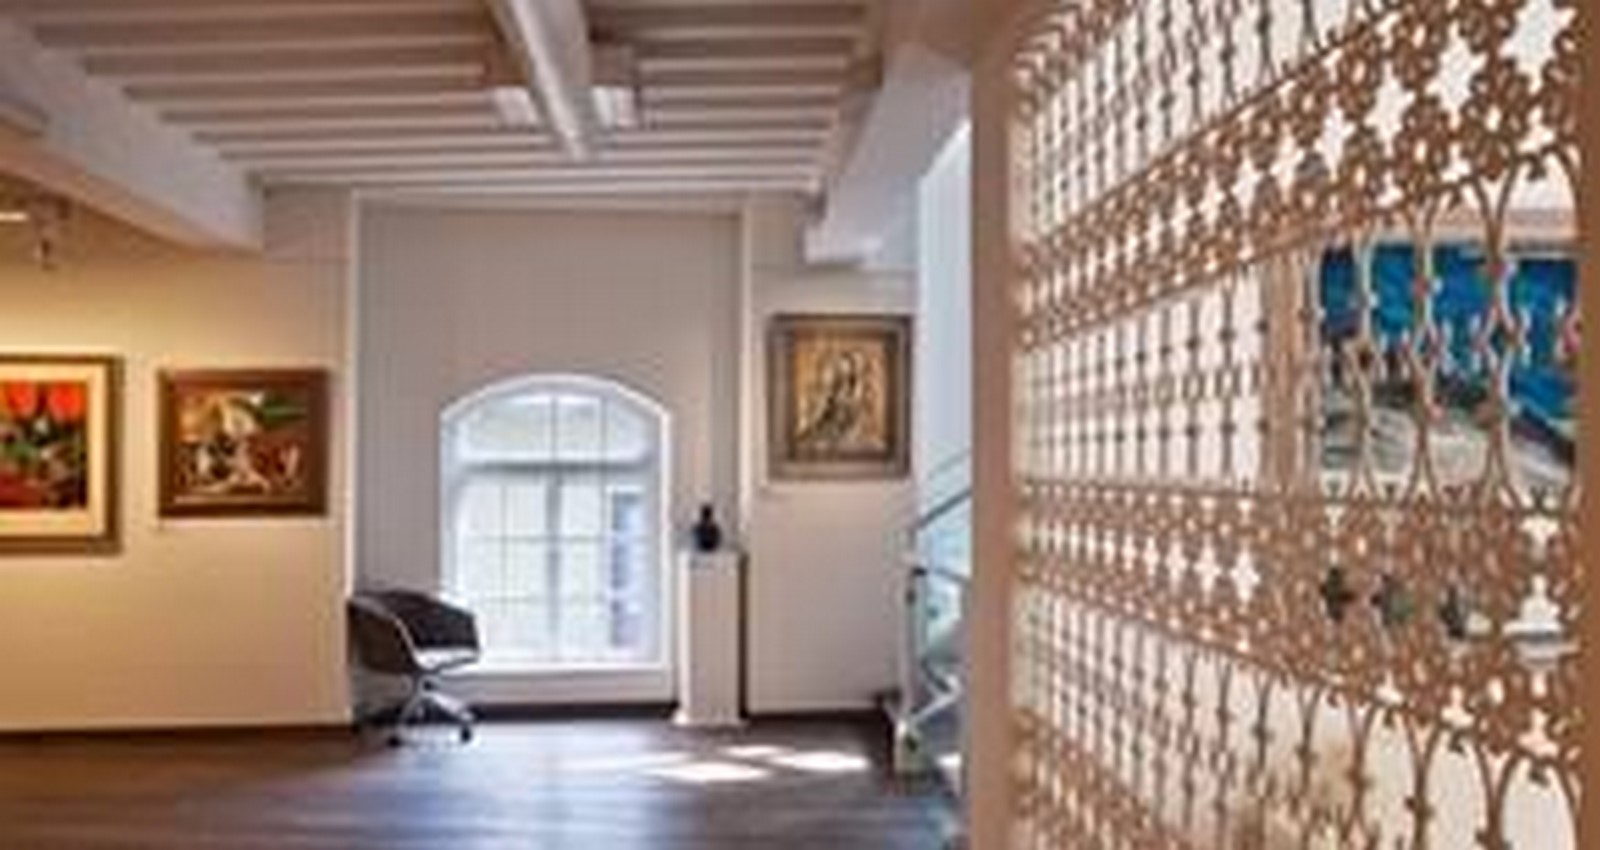 15 Historical Buildings With Modern Interiors - Sheet12